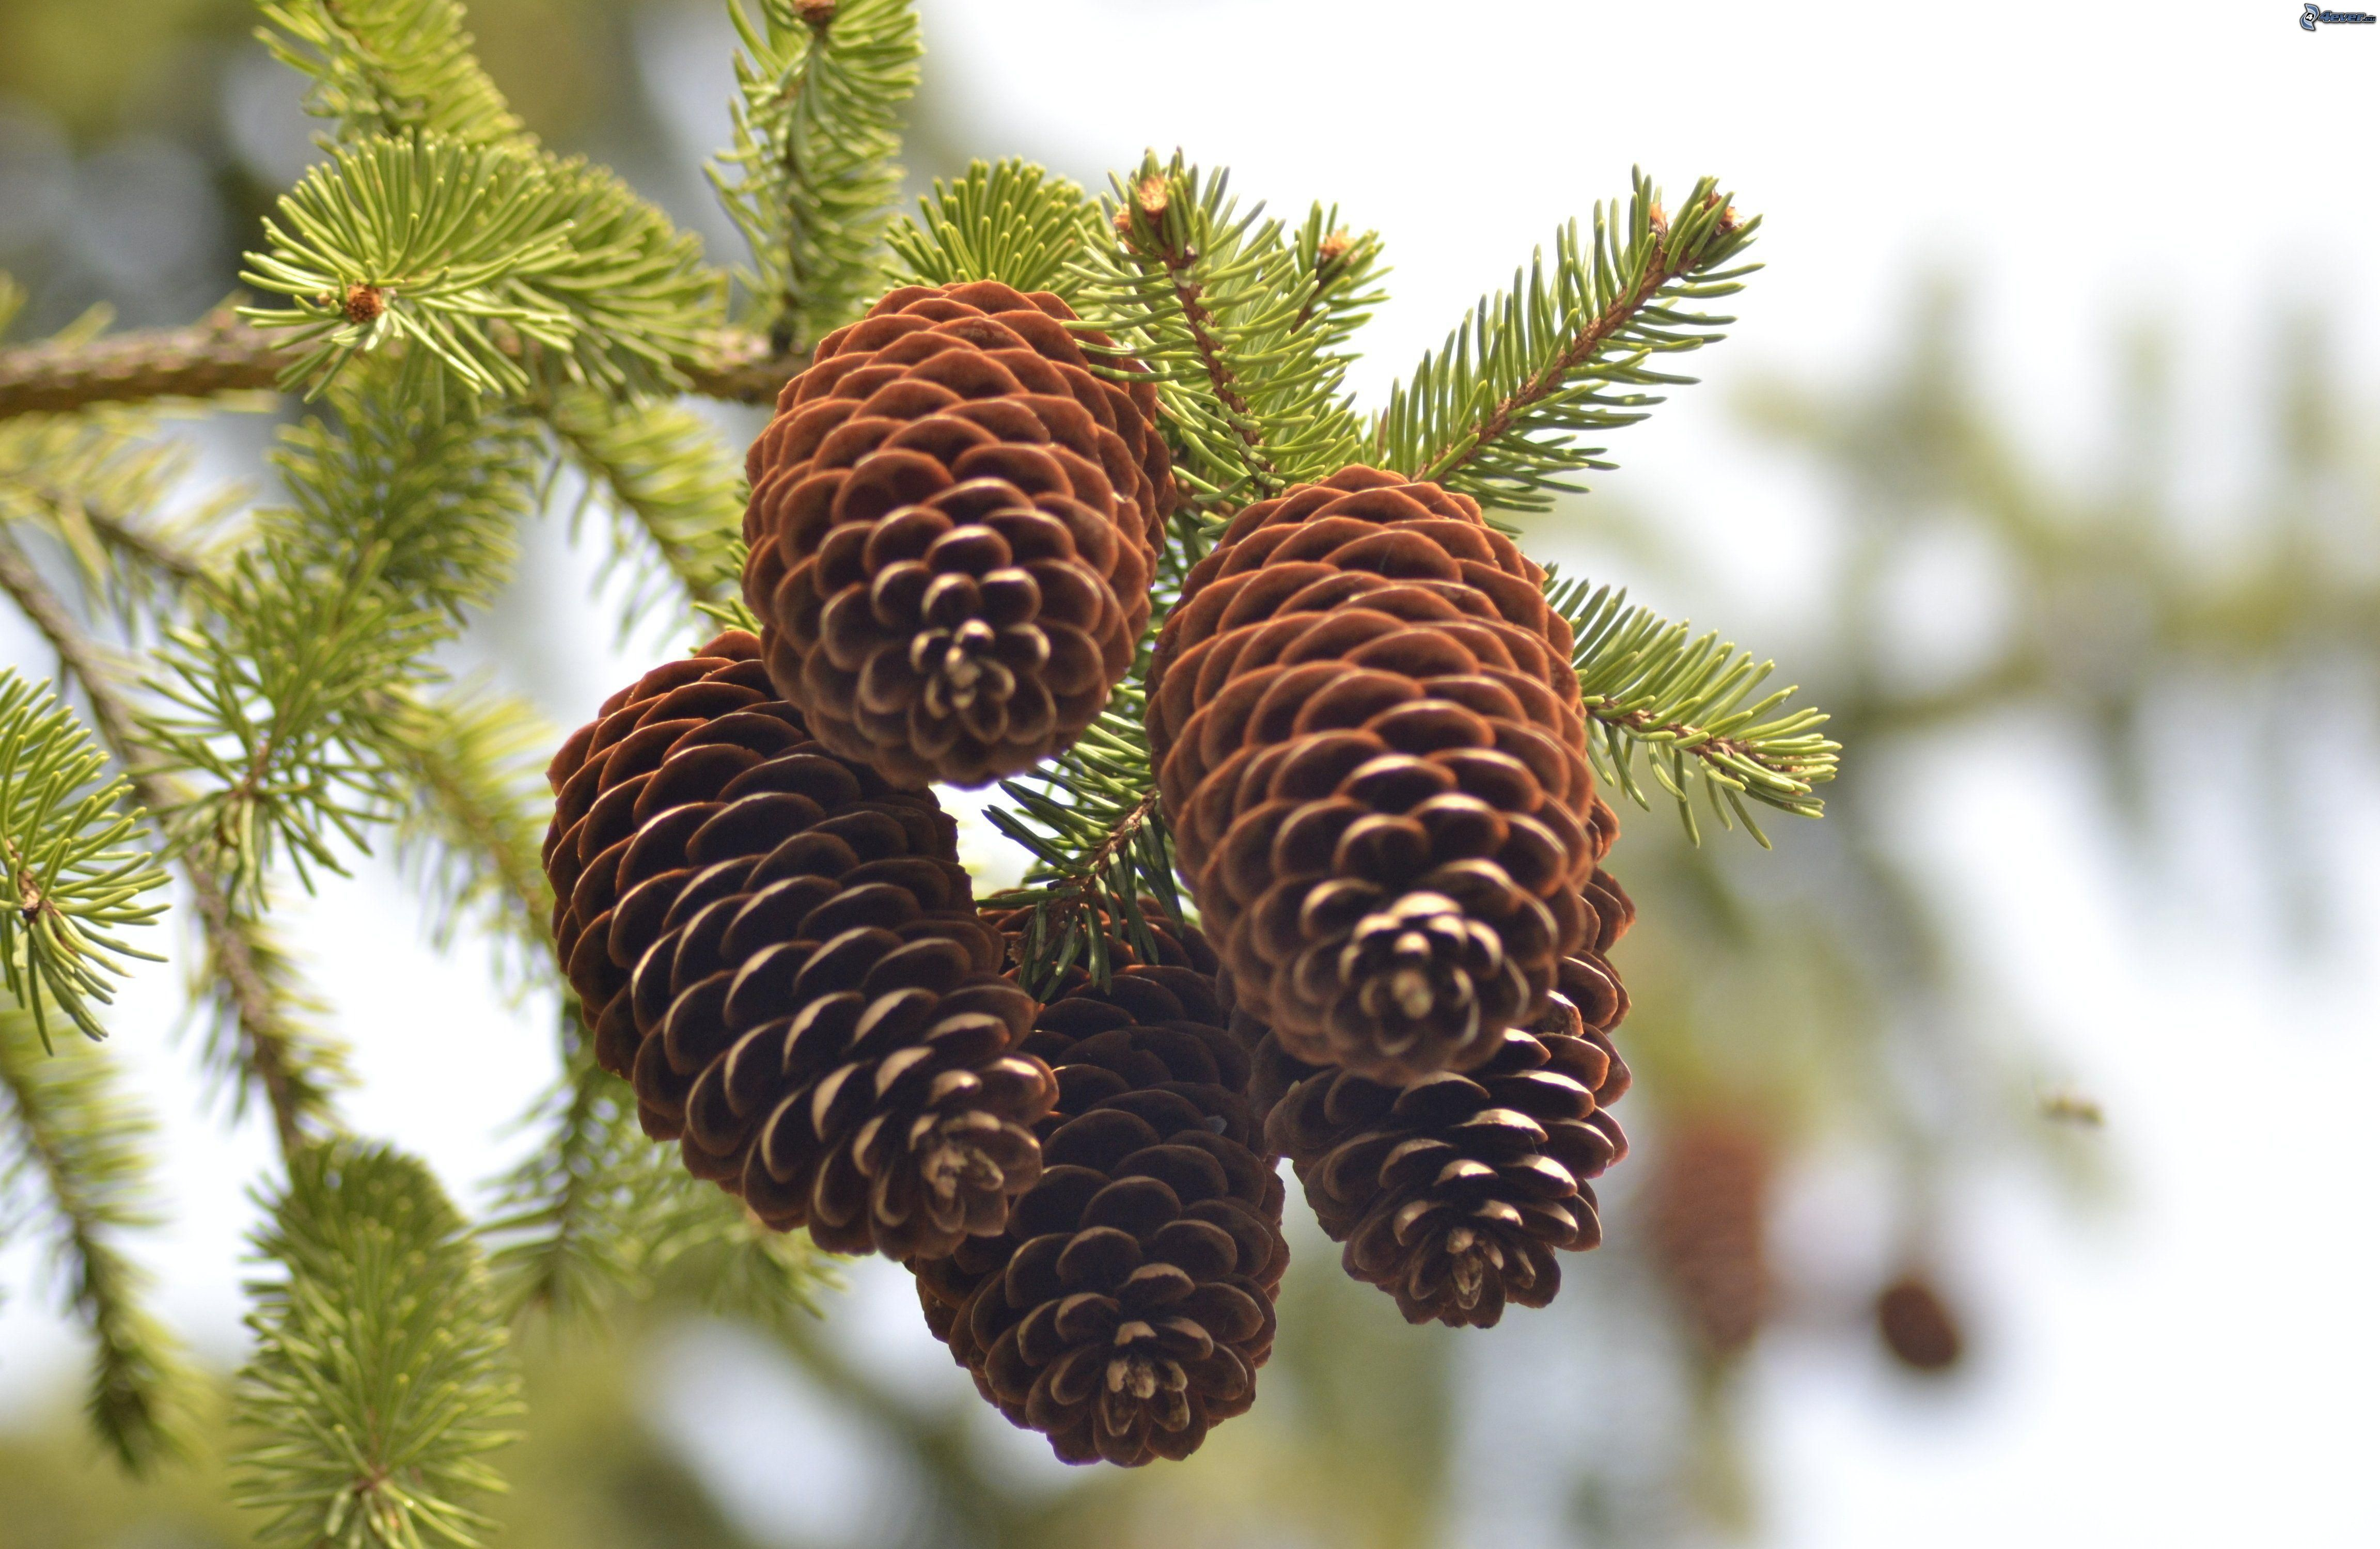 http://pictures.4ever.eu/data/download/nature/plants/conifer-cone,-spruce-207380.jpg